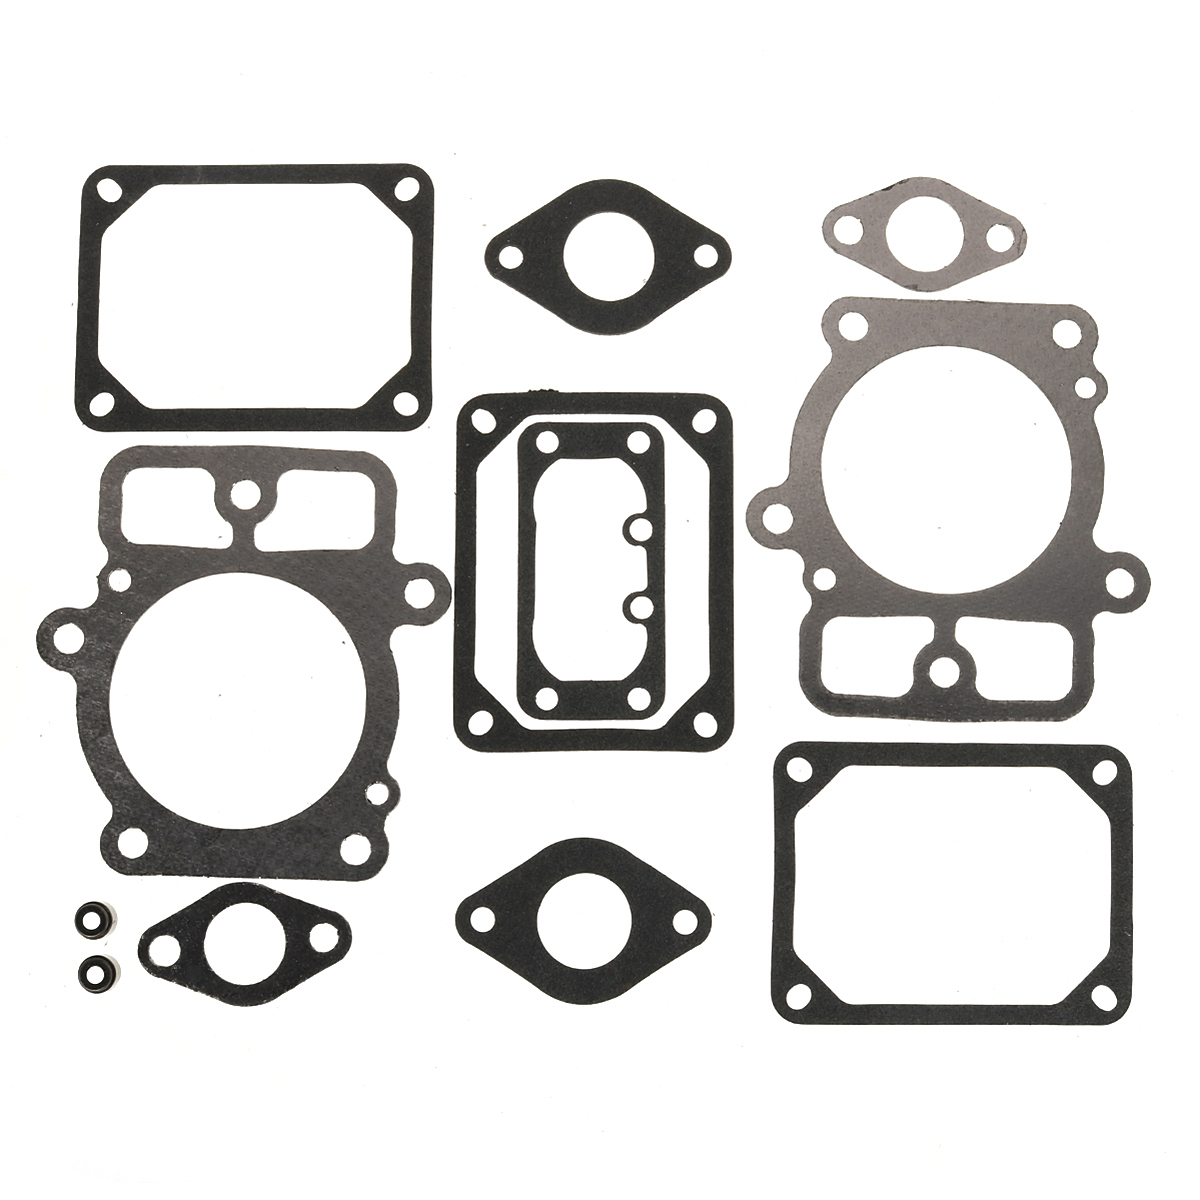 12 PCS Lawn Mower Valve Gasket Set For Briggs & Stratton 694013 Replaces# 499890